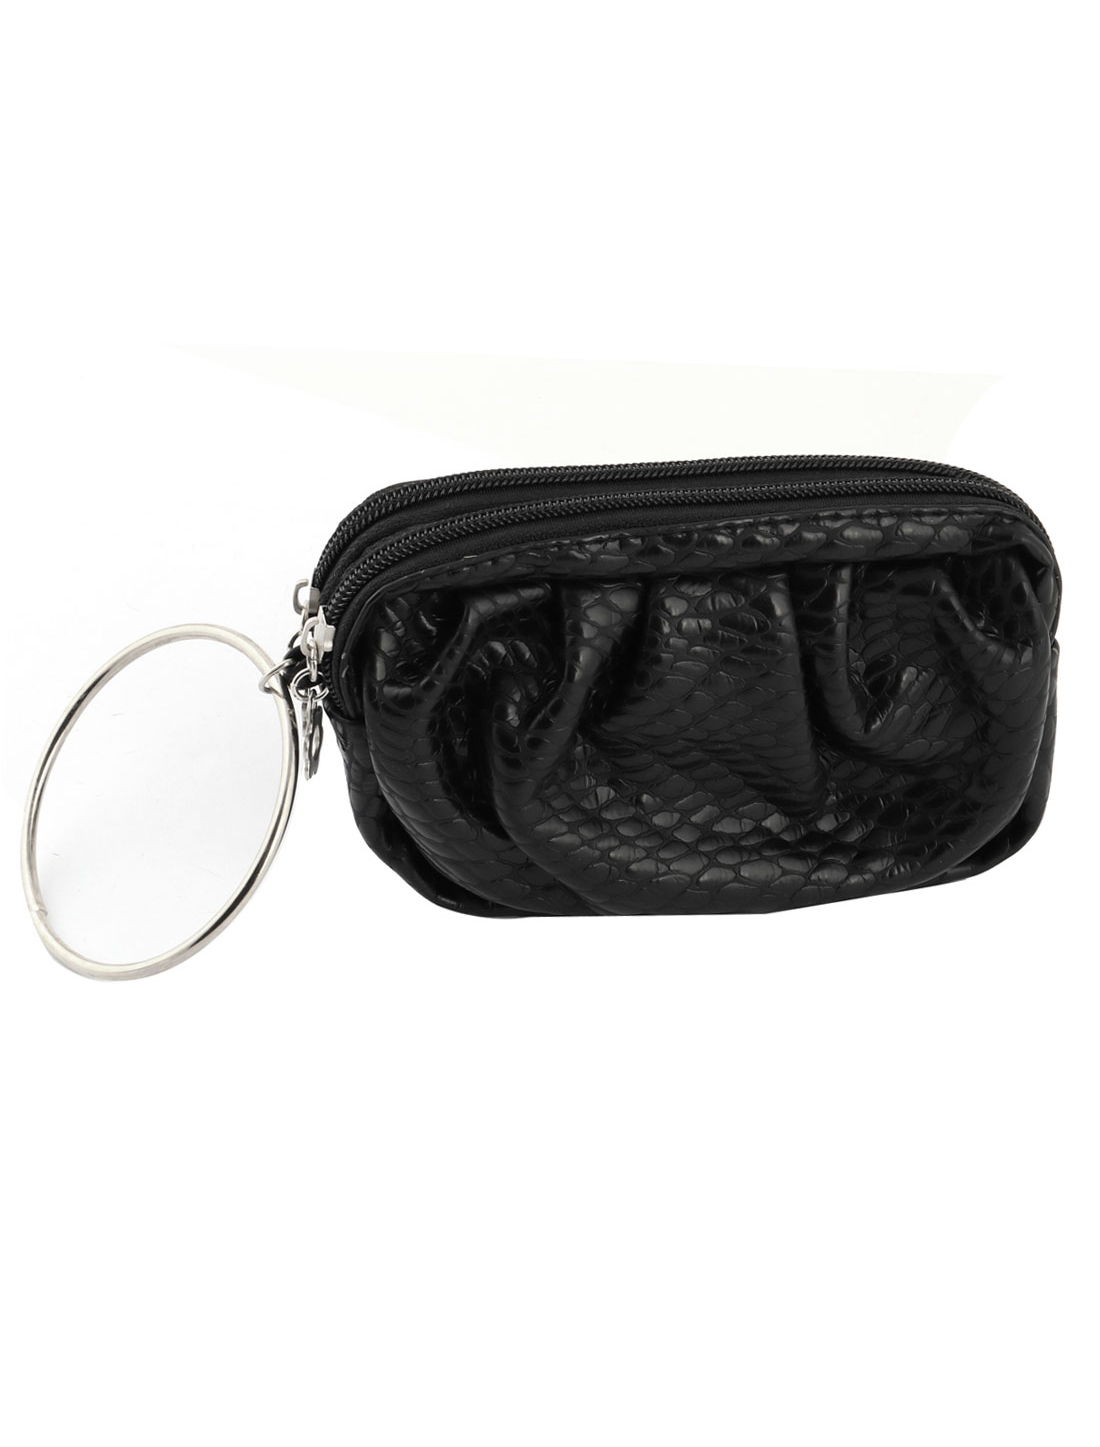 Women Faux Leather Zipper Up Phone Keys Money Coin Holder Wallet Purse keyring Black